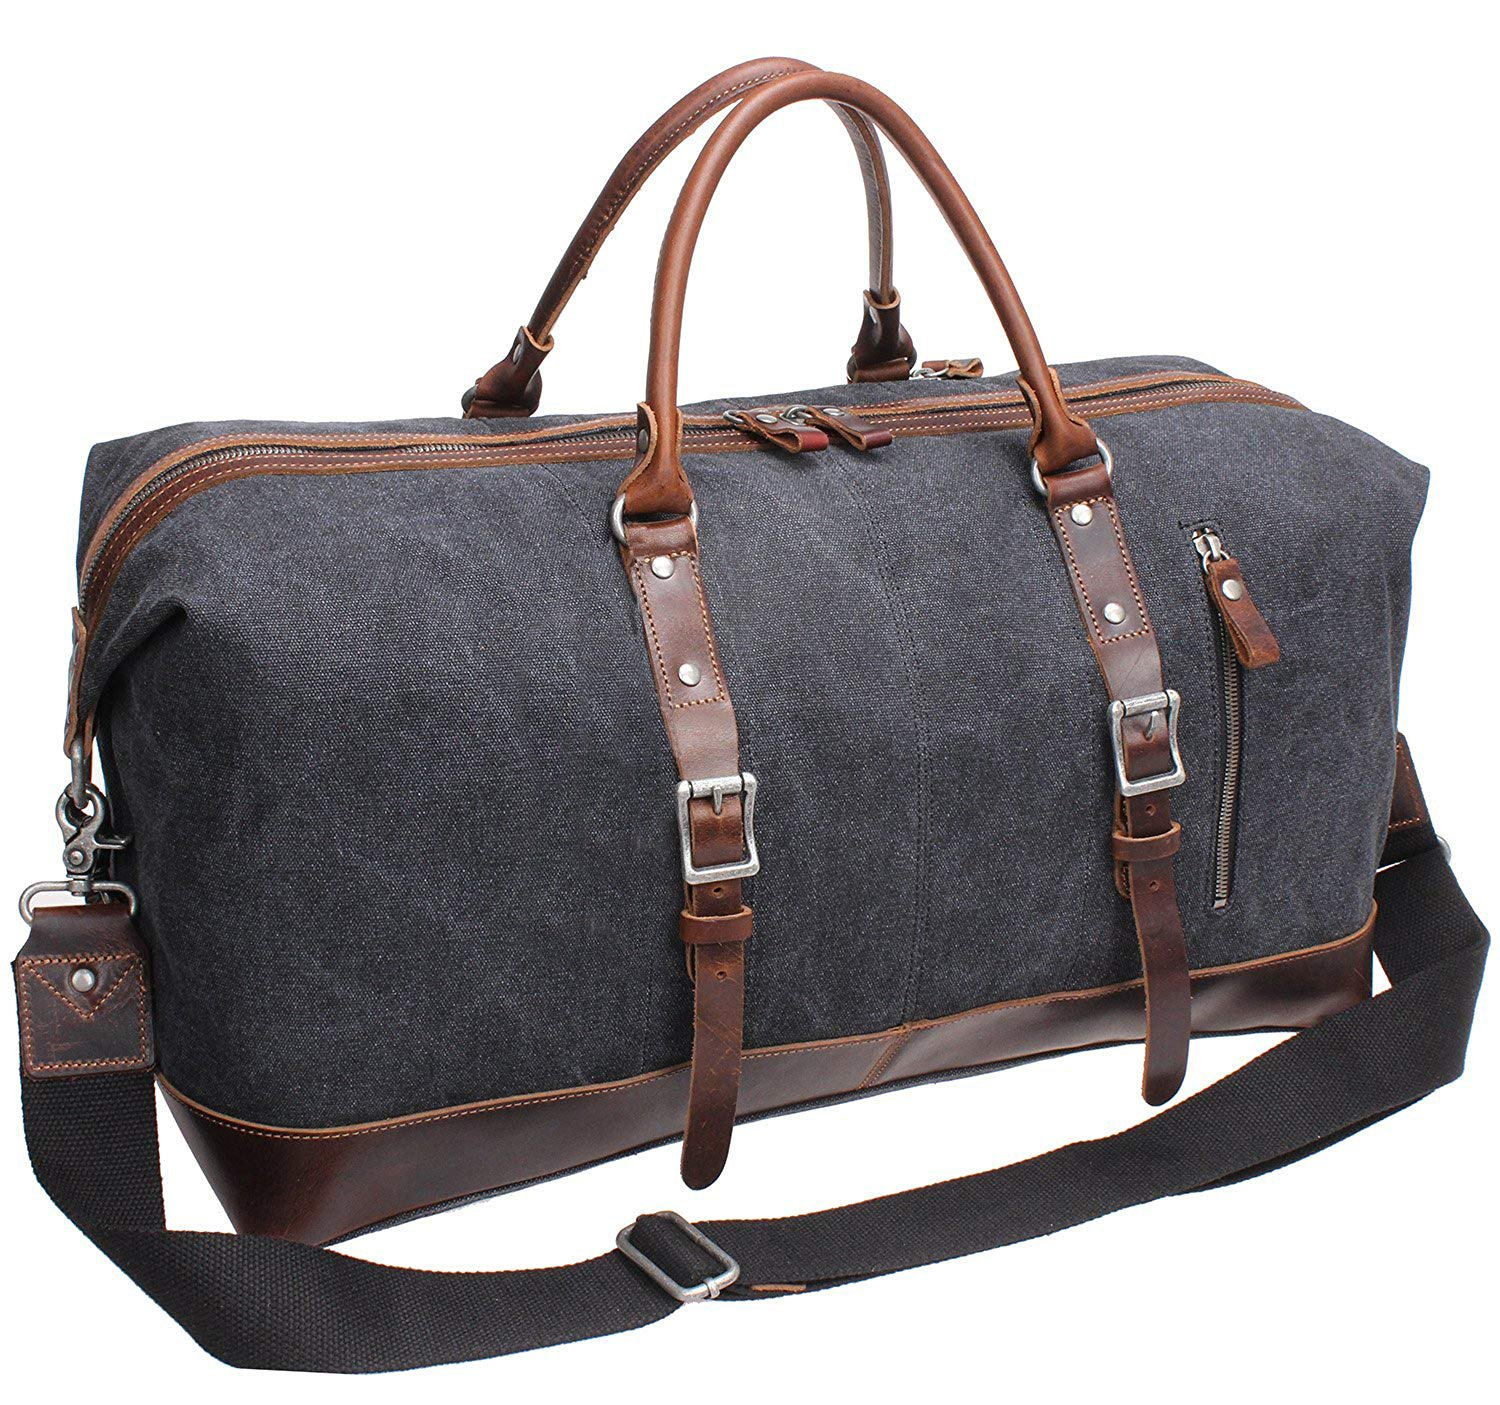 Iblue Vinatge Leather Weekender Travel Bag Mens Duffel Bag Canvas B003(Xl 21'', Grey) #B003 grey XL 21''